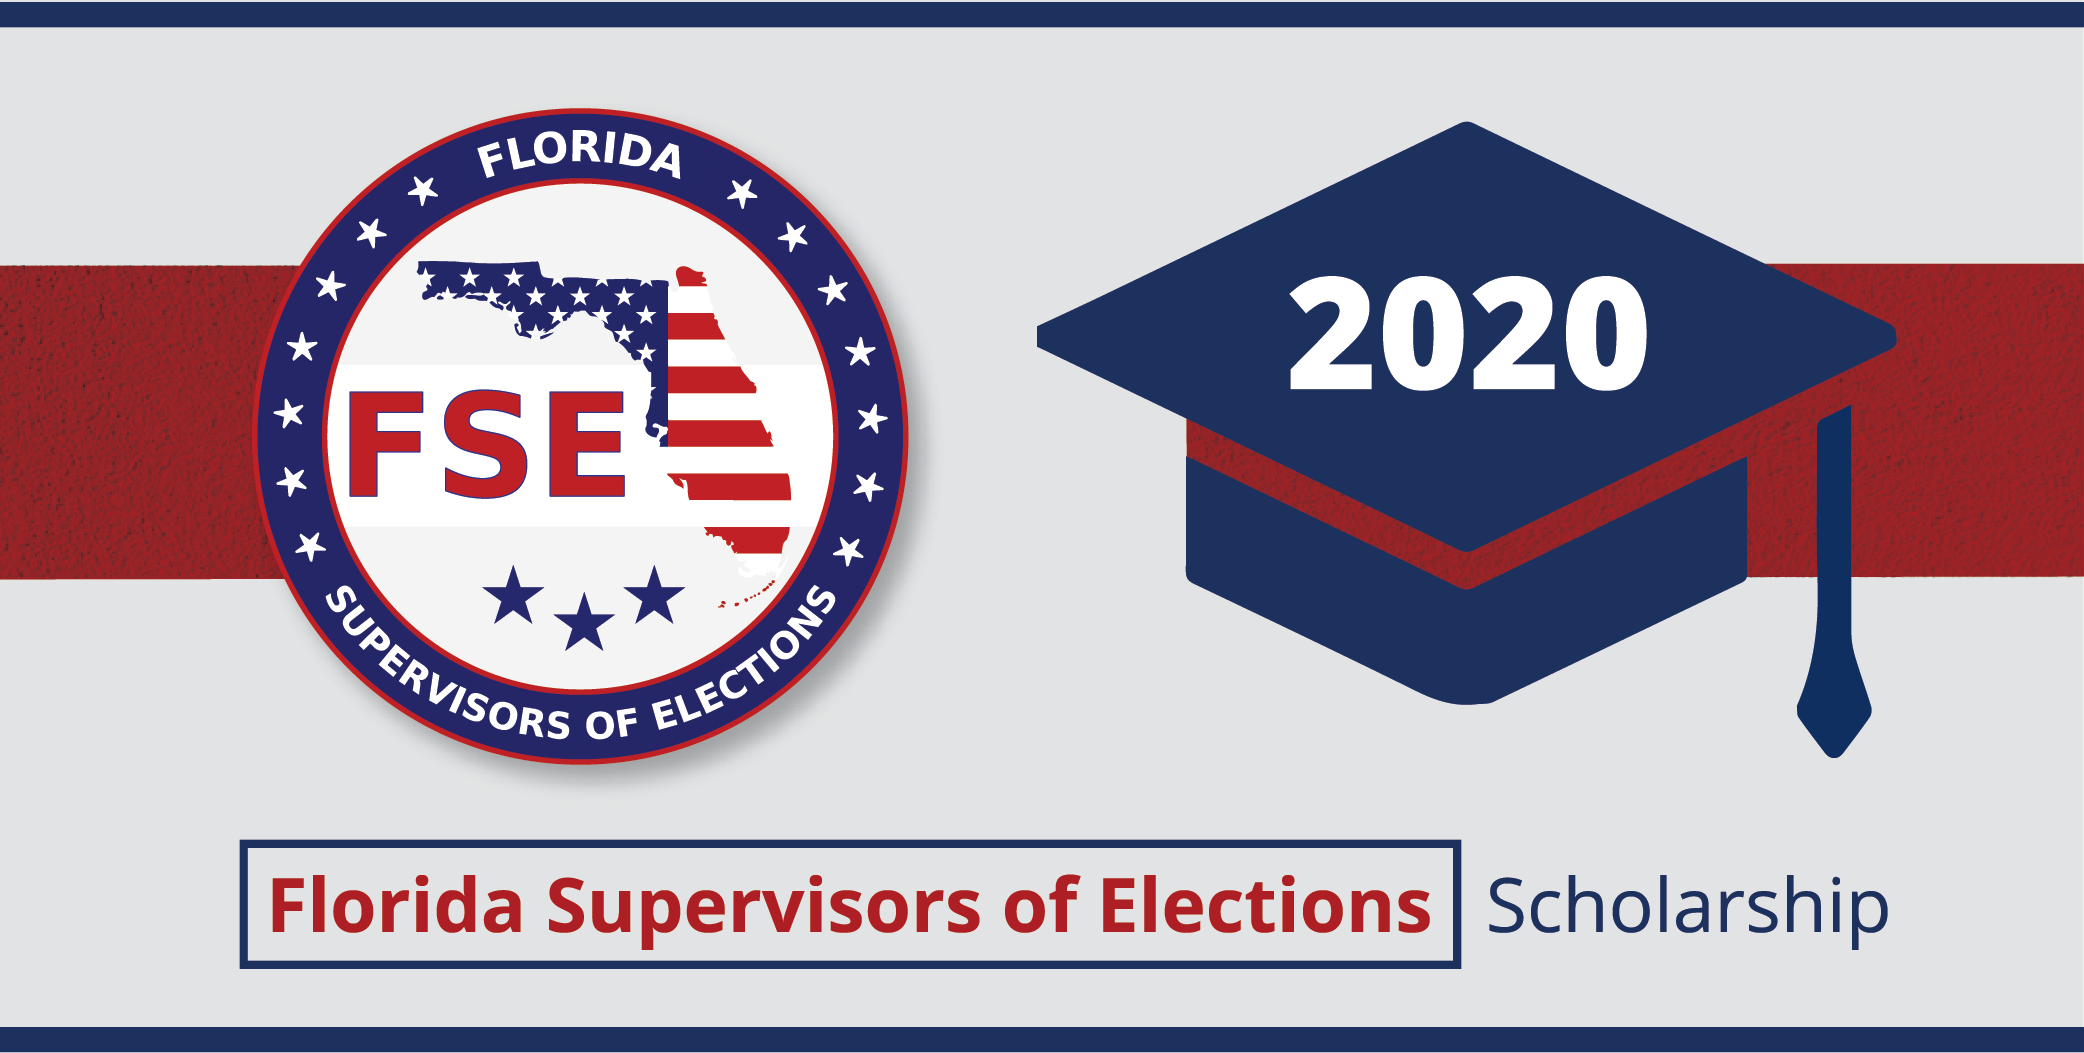 Florida Supervisors of Elections Banner